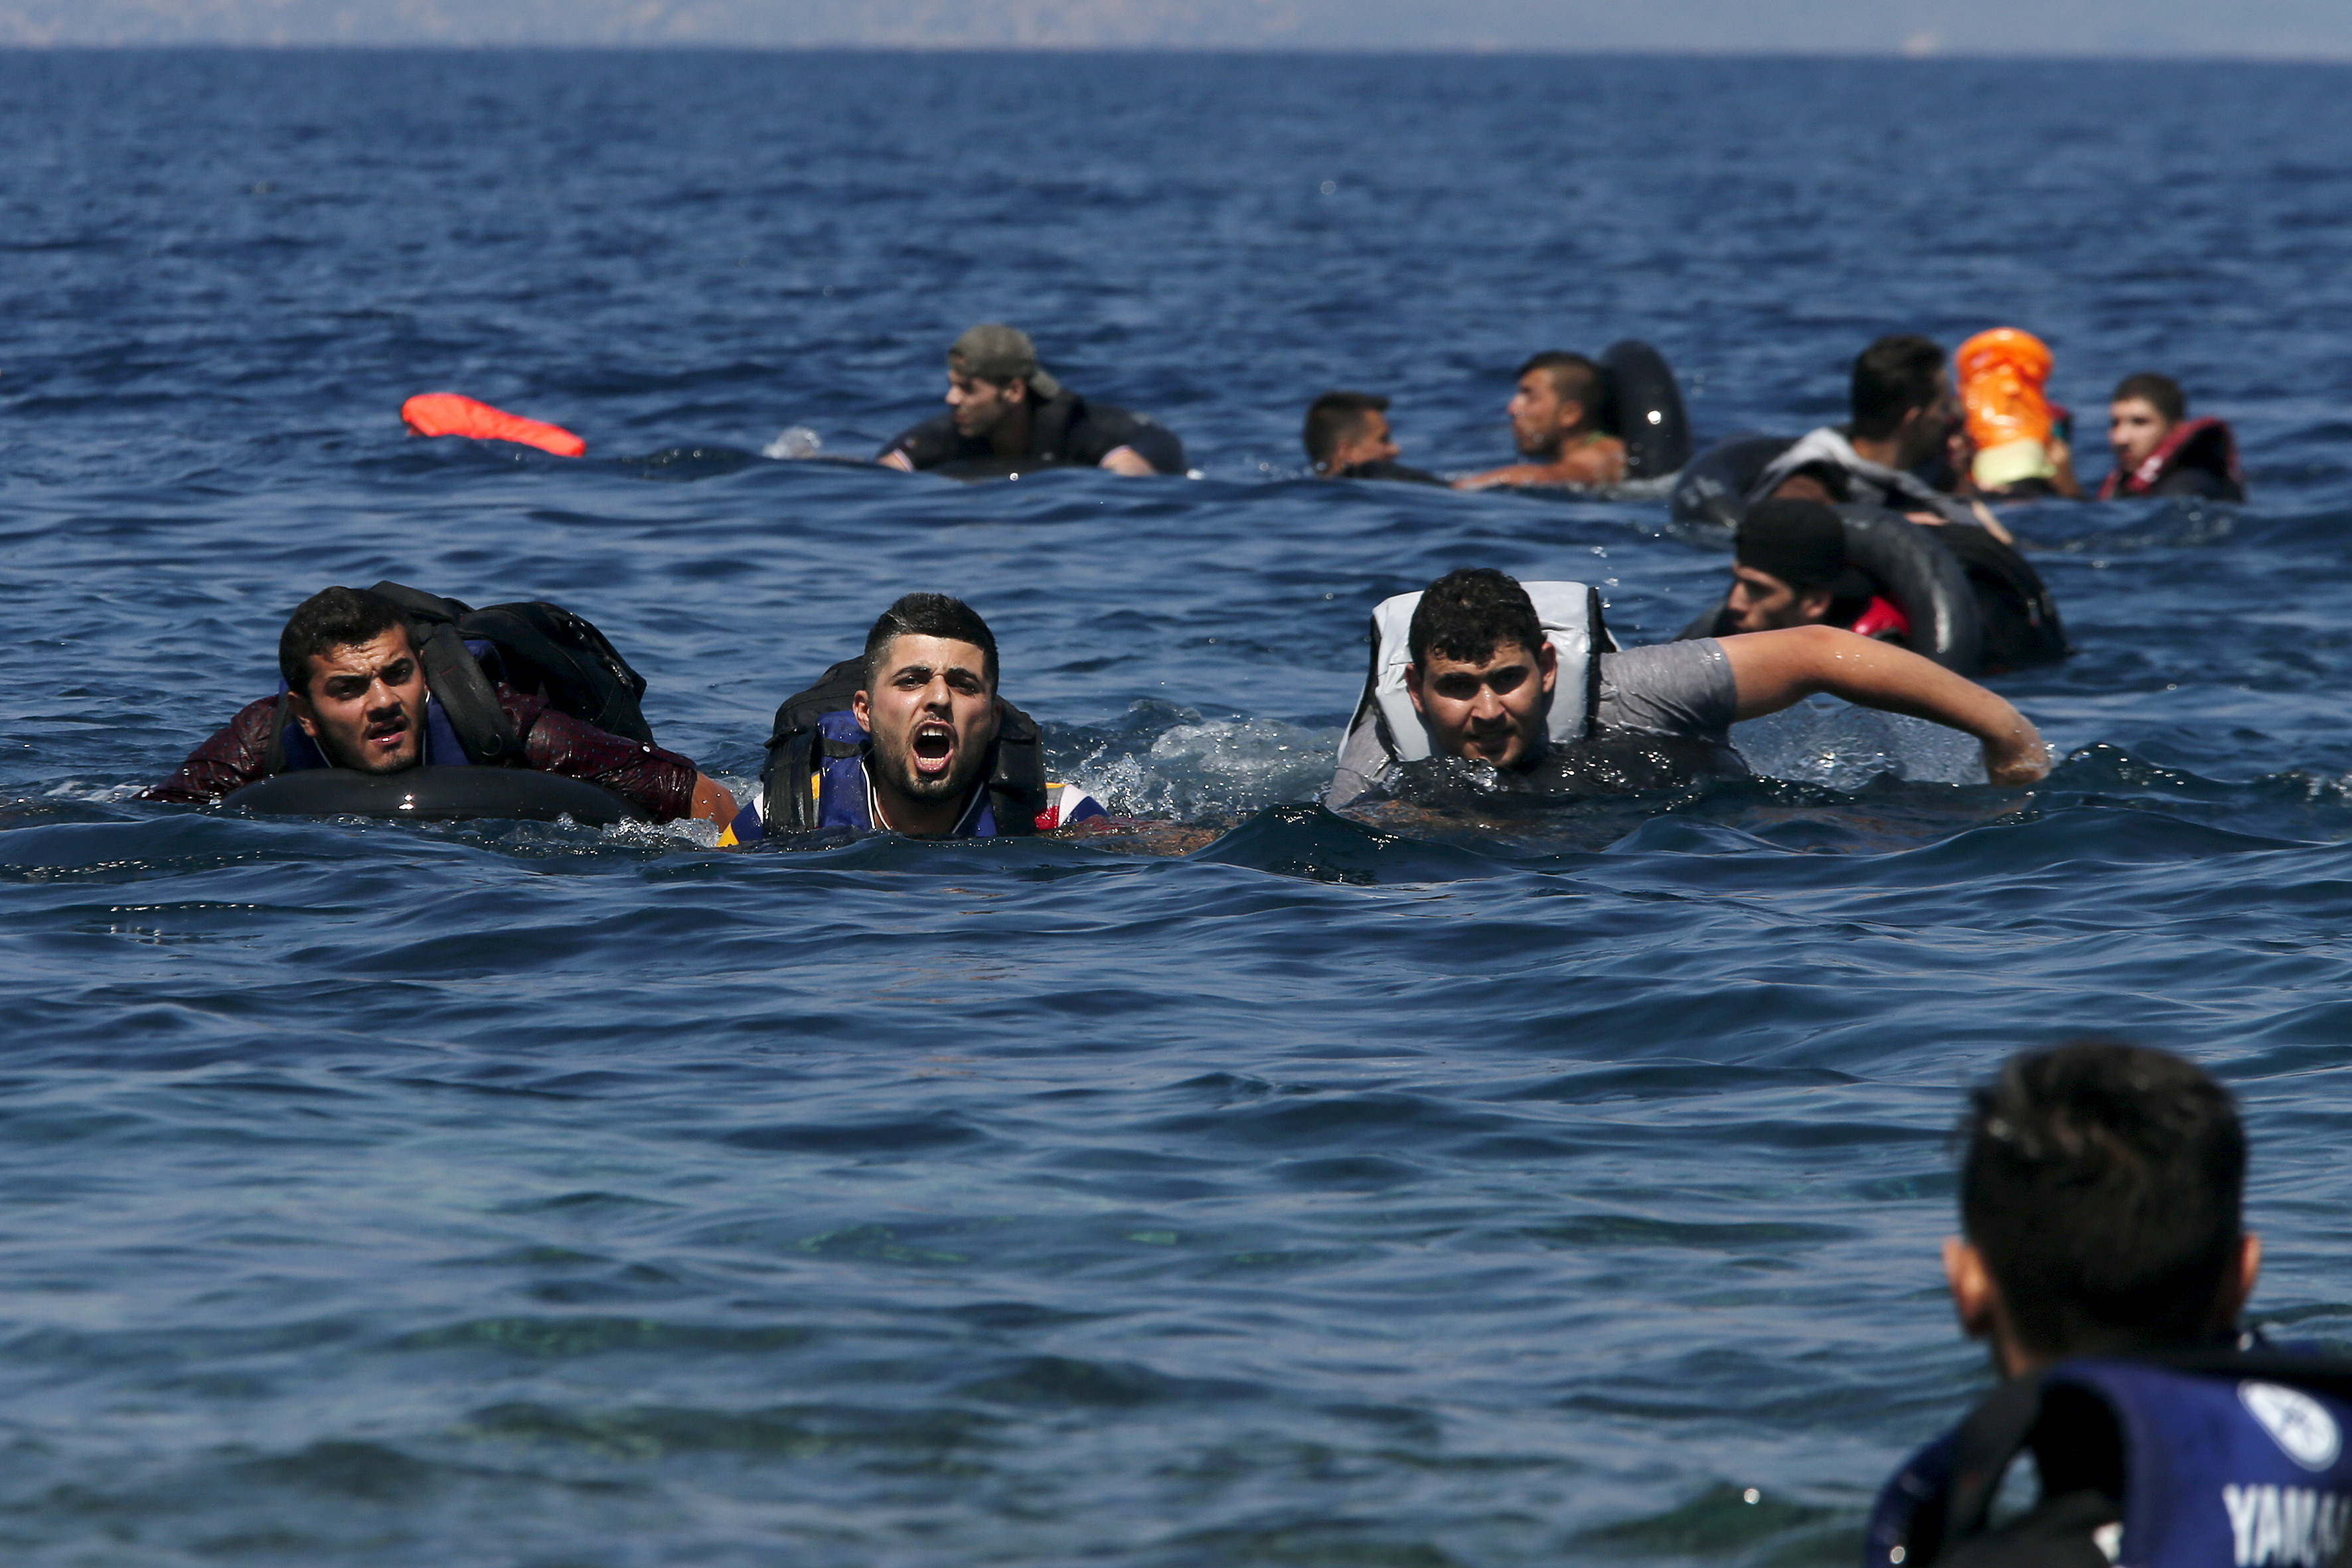 A refugee (2nd L) shouts as he swims towards the shore after a dinghy carrying Syrian and Afghan refugees deflated some 100m away before reaching the Greek island of Lesbos, September 13, 2015. Of the record total of 432,761 refugees and migrants making the perilous journey across the Mediterranean to Europe so far this year, an estimated 309,000 people had arrived by sea in Greece, the International Organization for Migration (IMO) said on Friday. About half of those crossing the Mediterranean are Syrians fleeing civil war, according to the United Nations refugee agency. Photo by Alkis Konstantinidis/Reuters